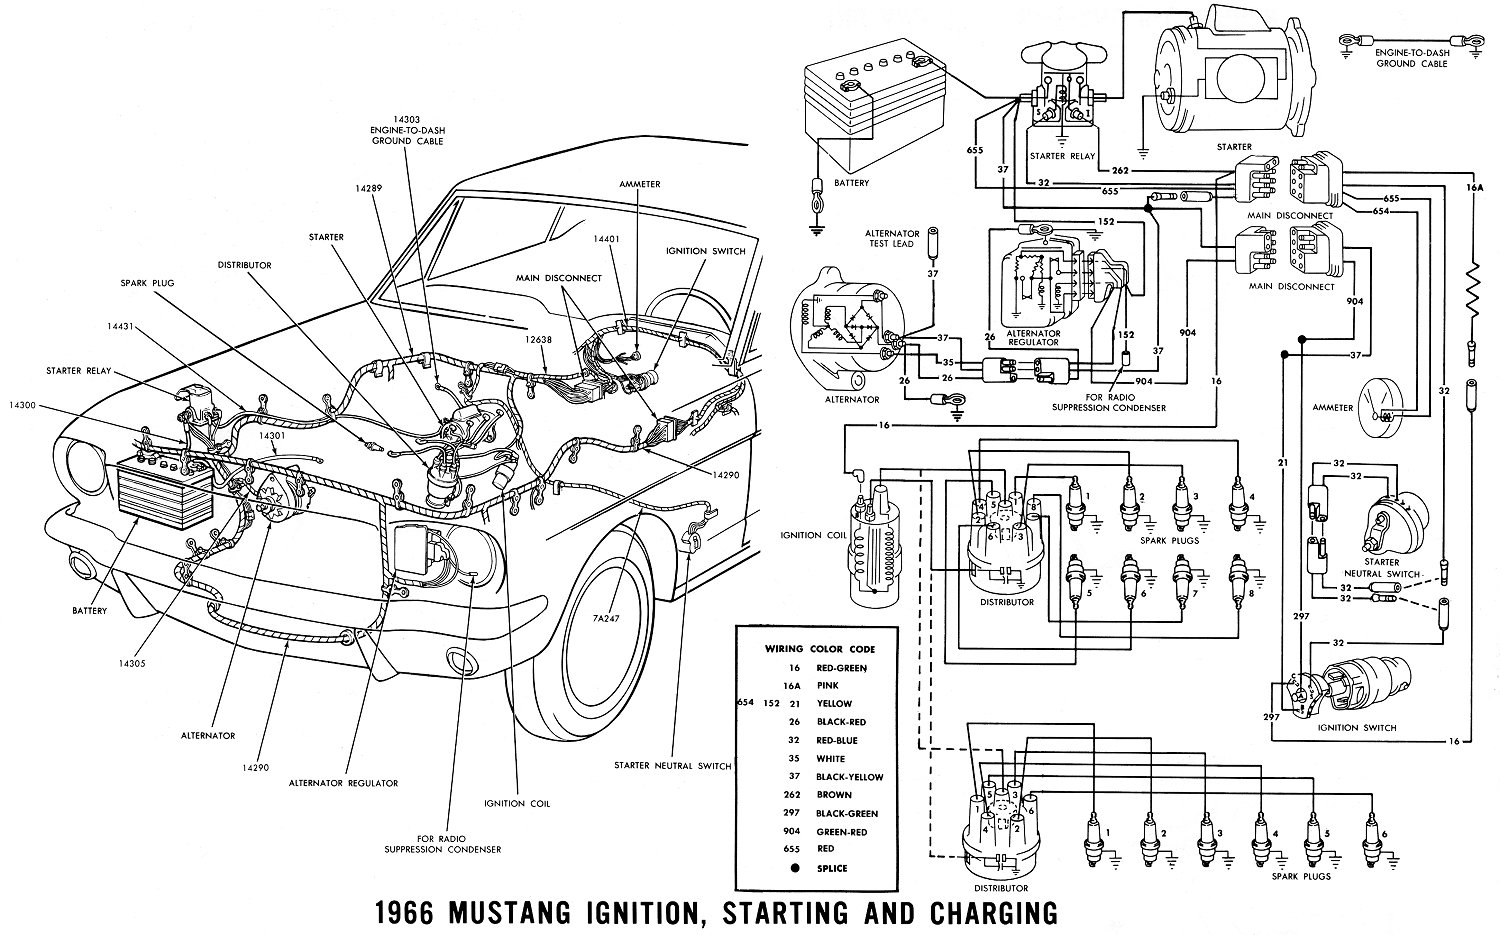 1969 mustang wiring diagram free  1969  free printable wiring diagrams database